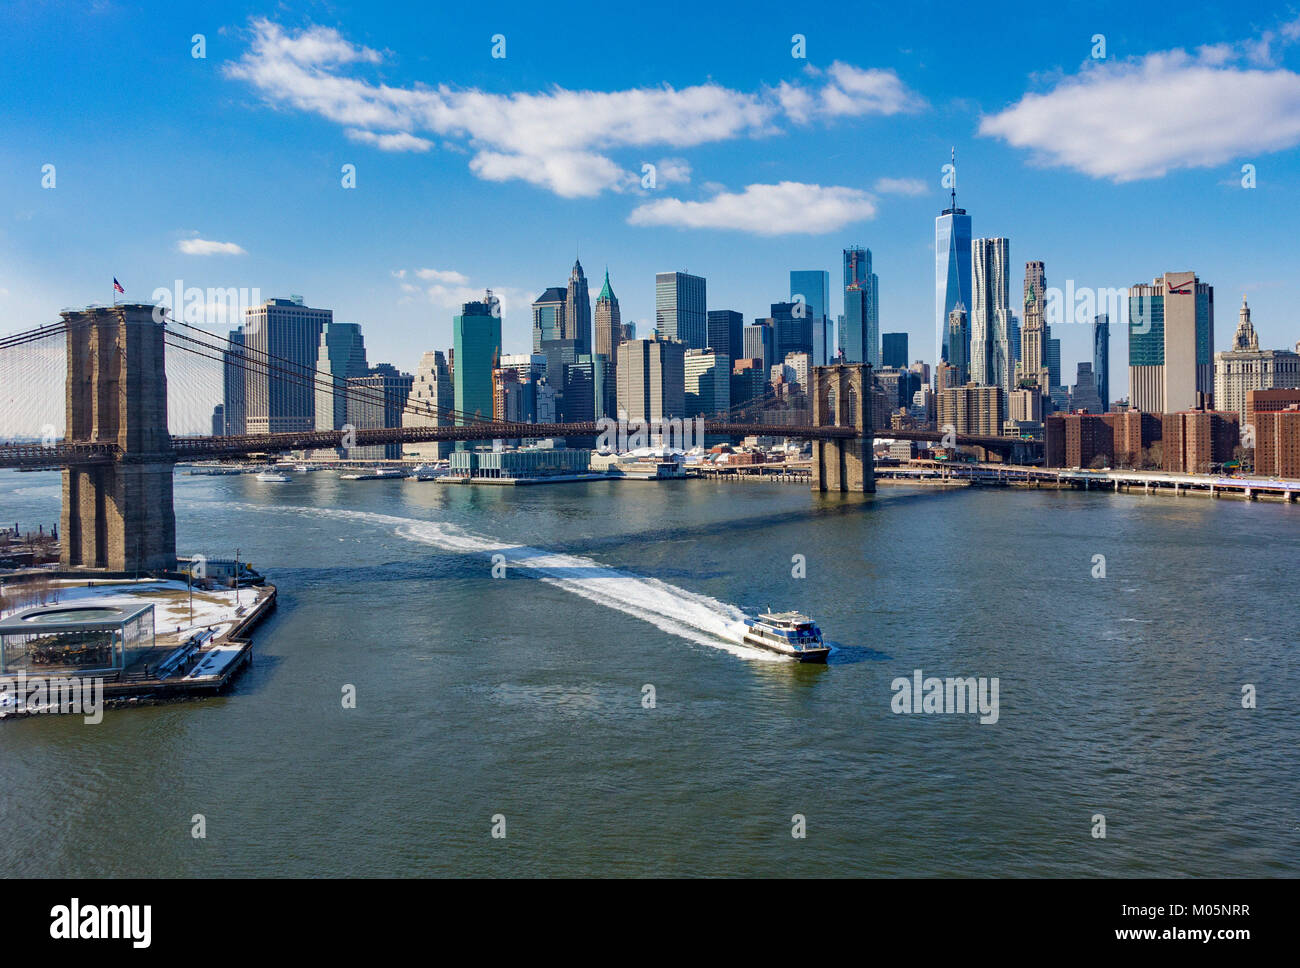 The Brooklyn Bridge and Lower Manhattan skyline seen from across the East River in winter Stock Photo